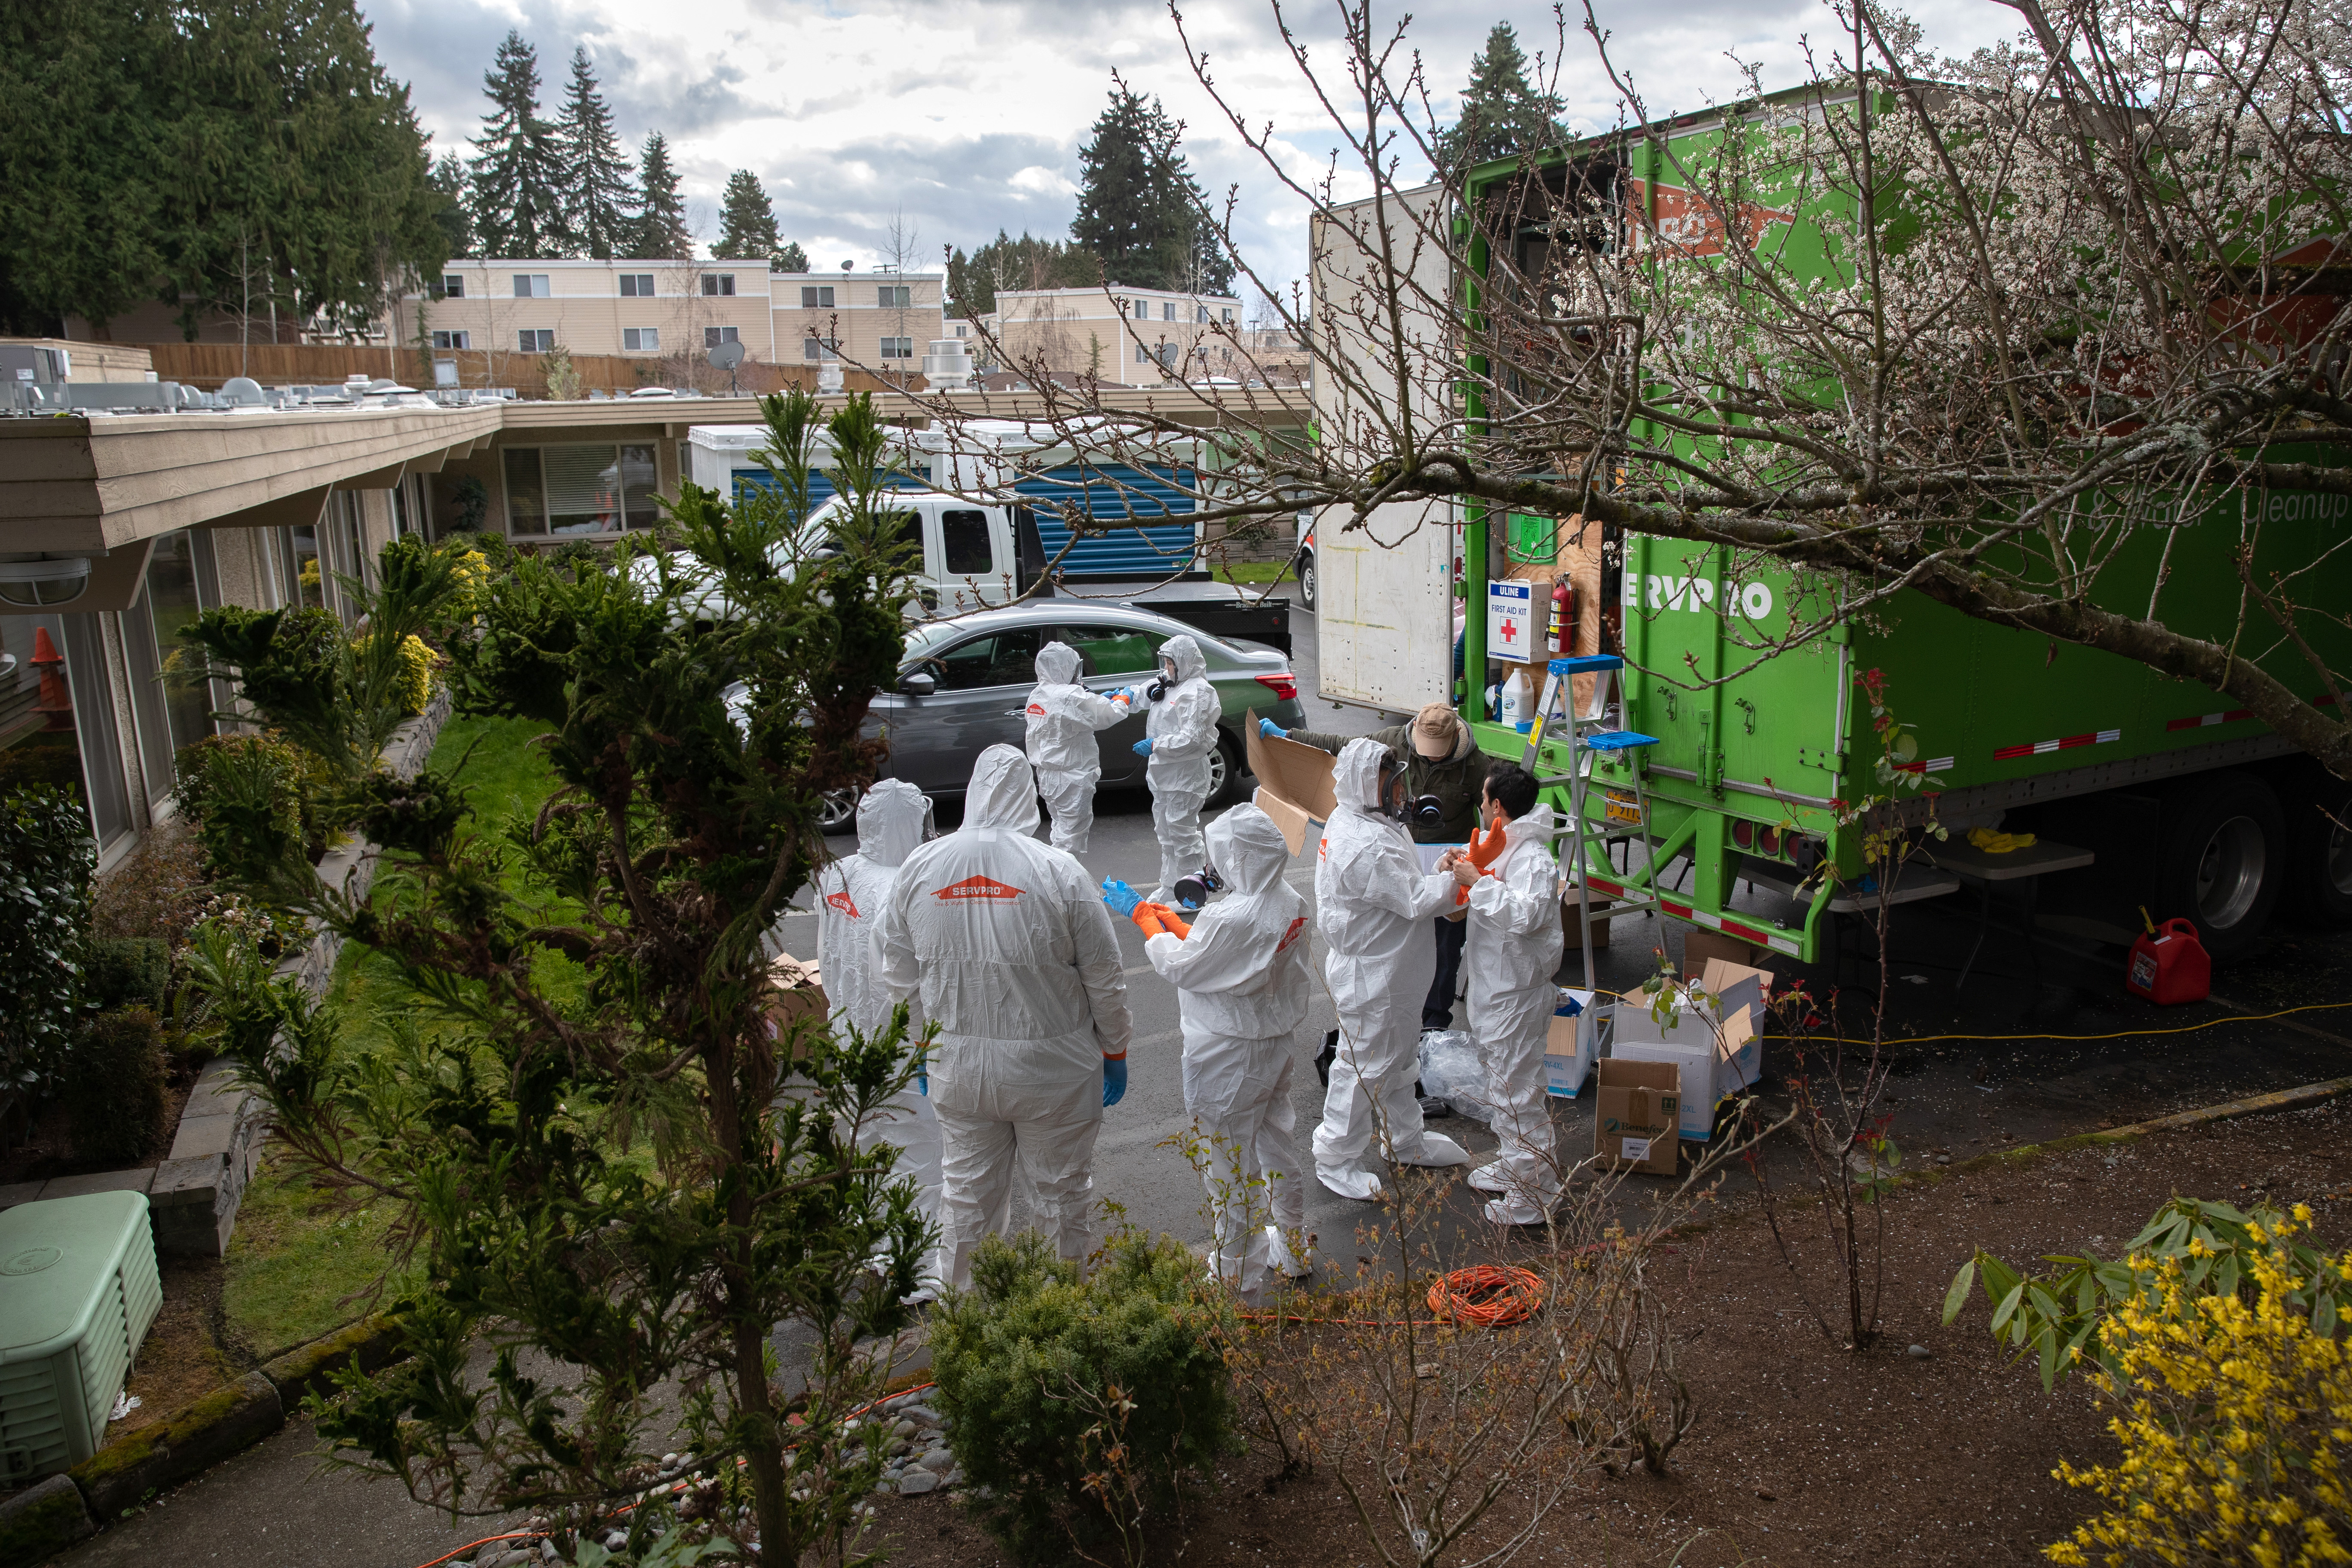 A cleaning crew wearing protective clothing (PPE) to protect them from coronavirus prepares to enter the Life Care Center on March 12, 2020 in Kirkland, Washington.